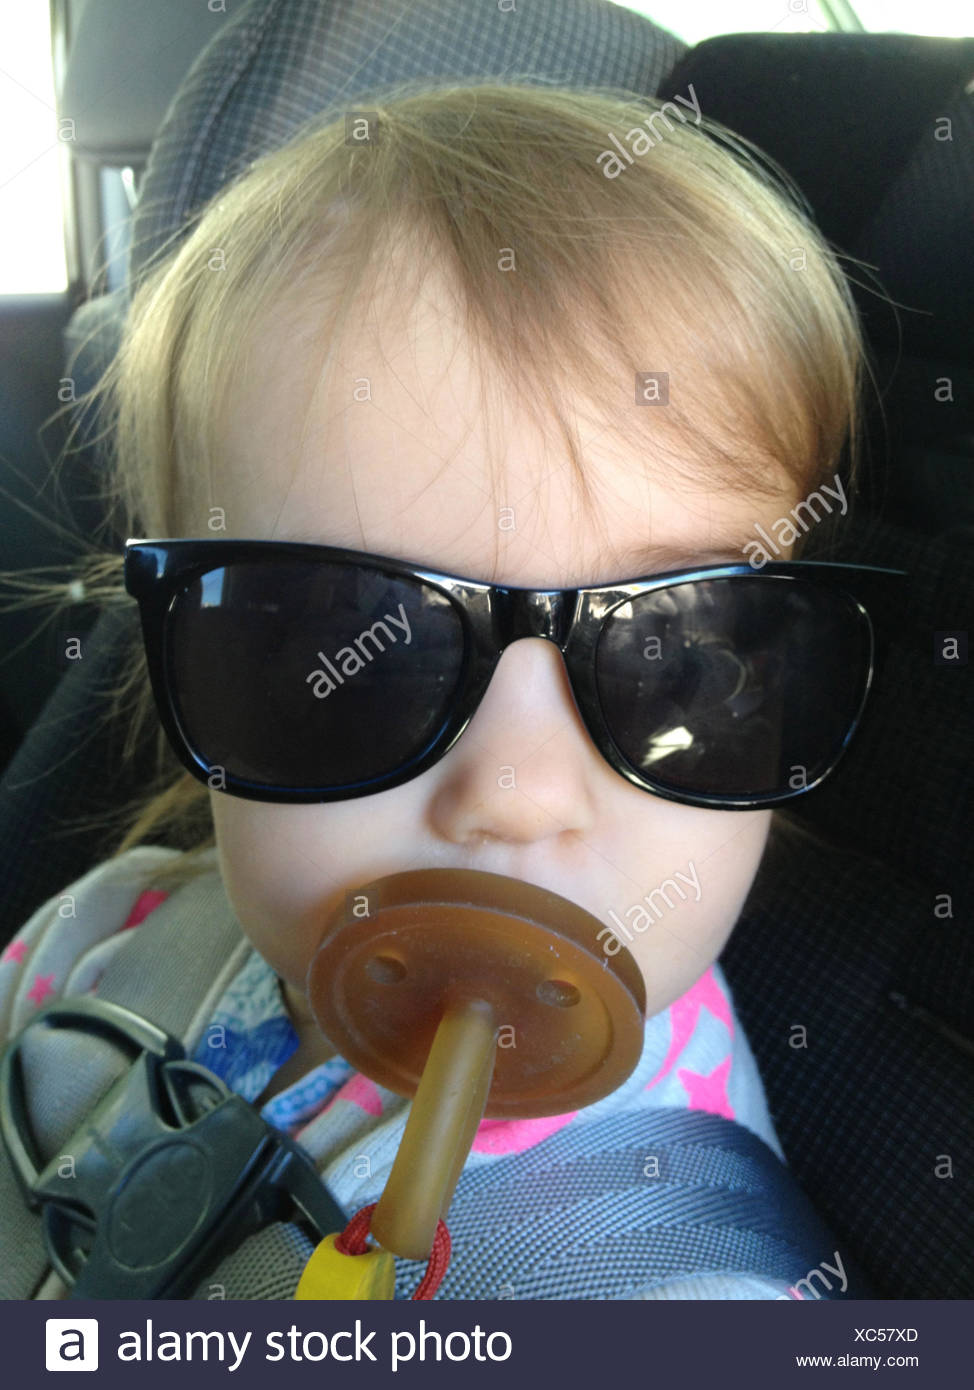 Portrait of girl (18-23 months) with dummy and sunglasses - Stock Image